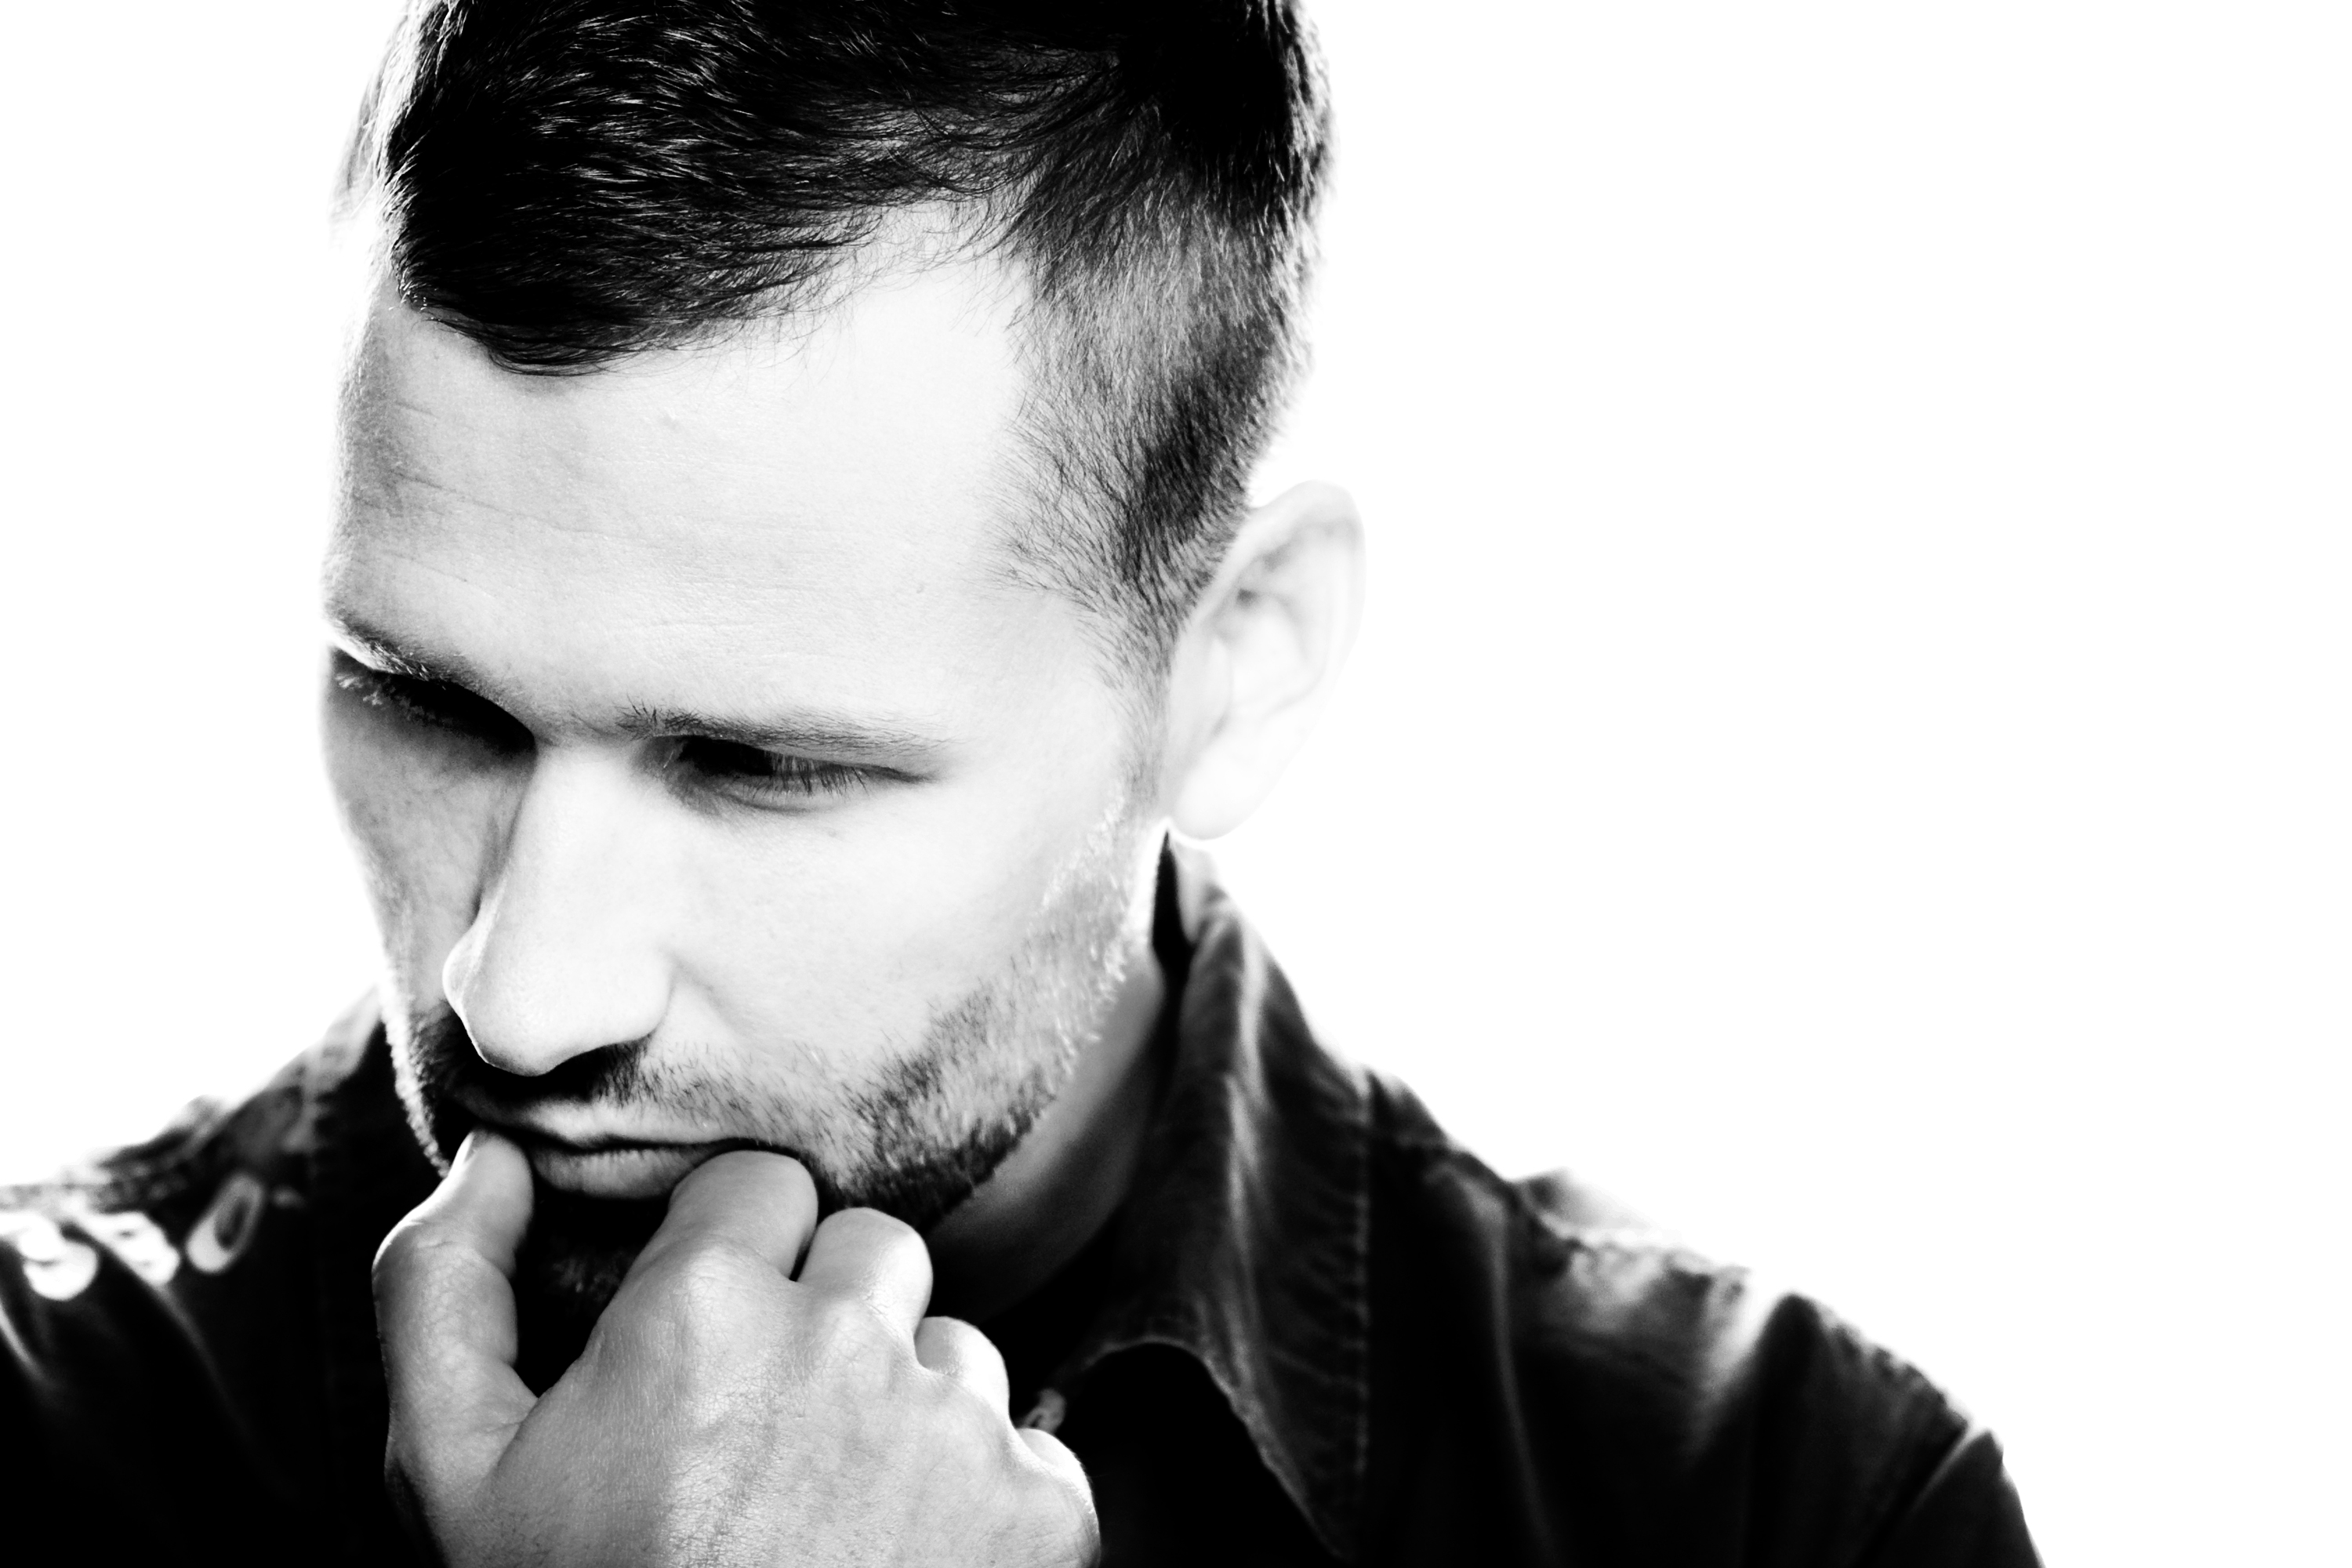 A New Kaskade Compilation Album Is Coming